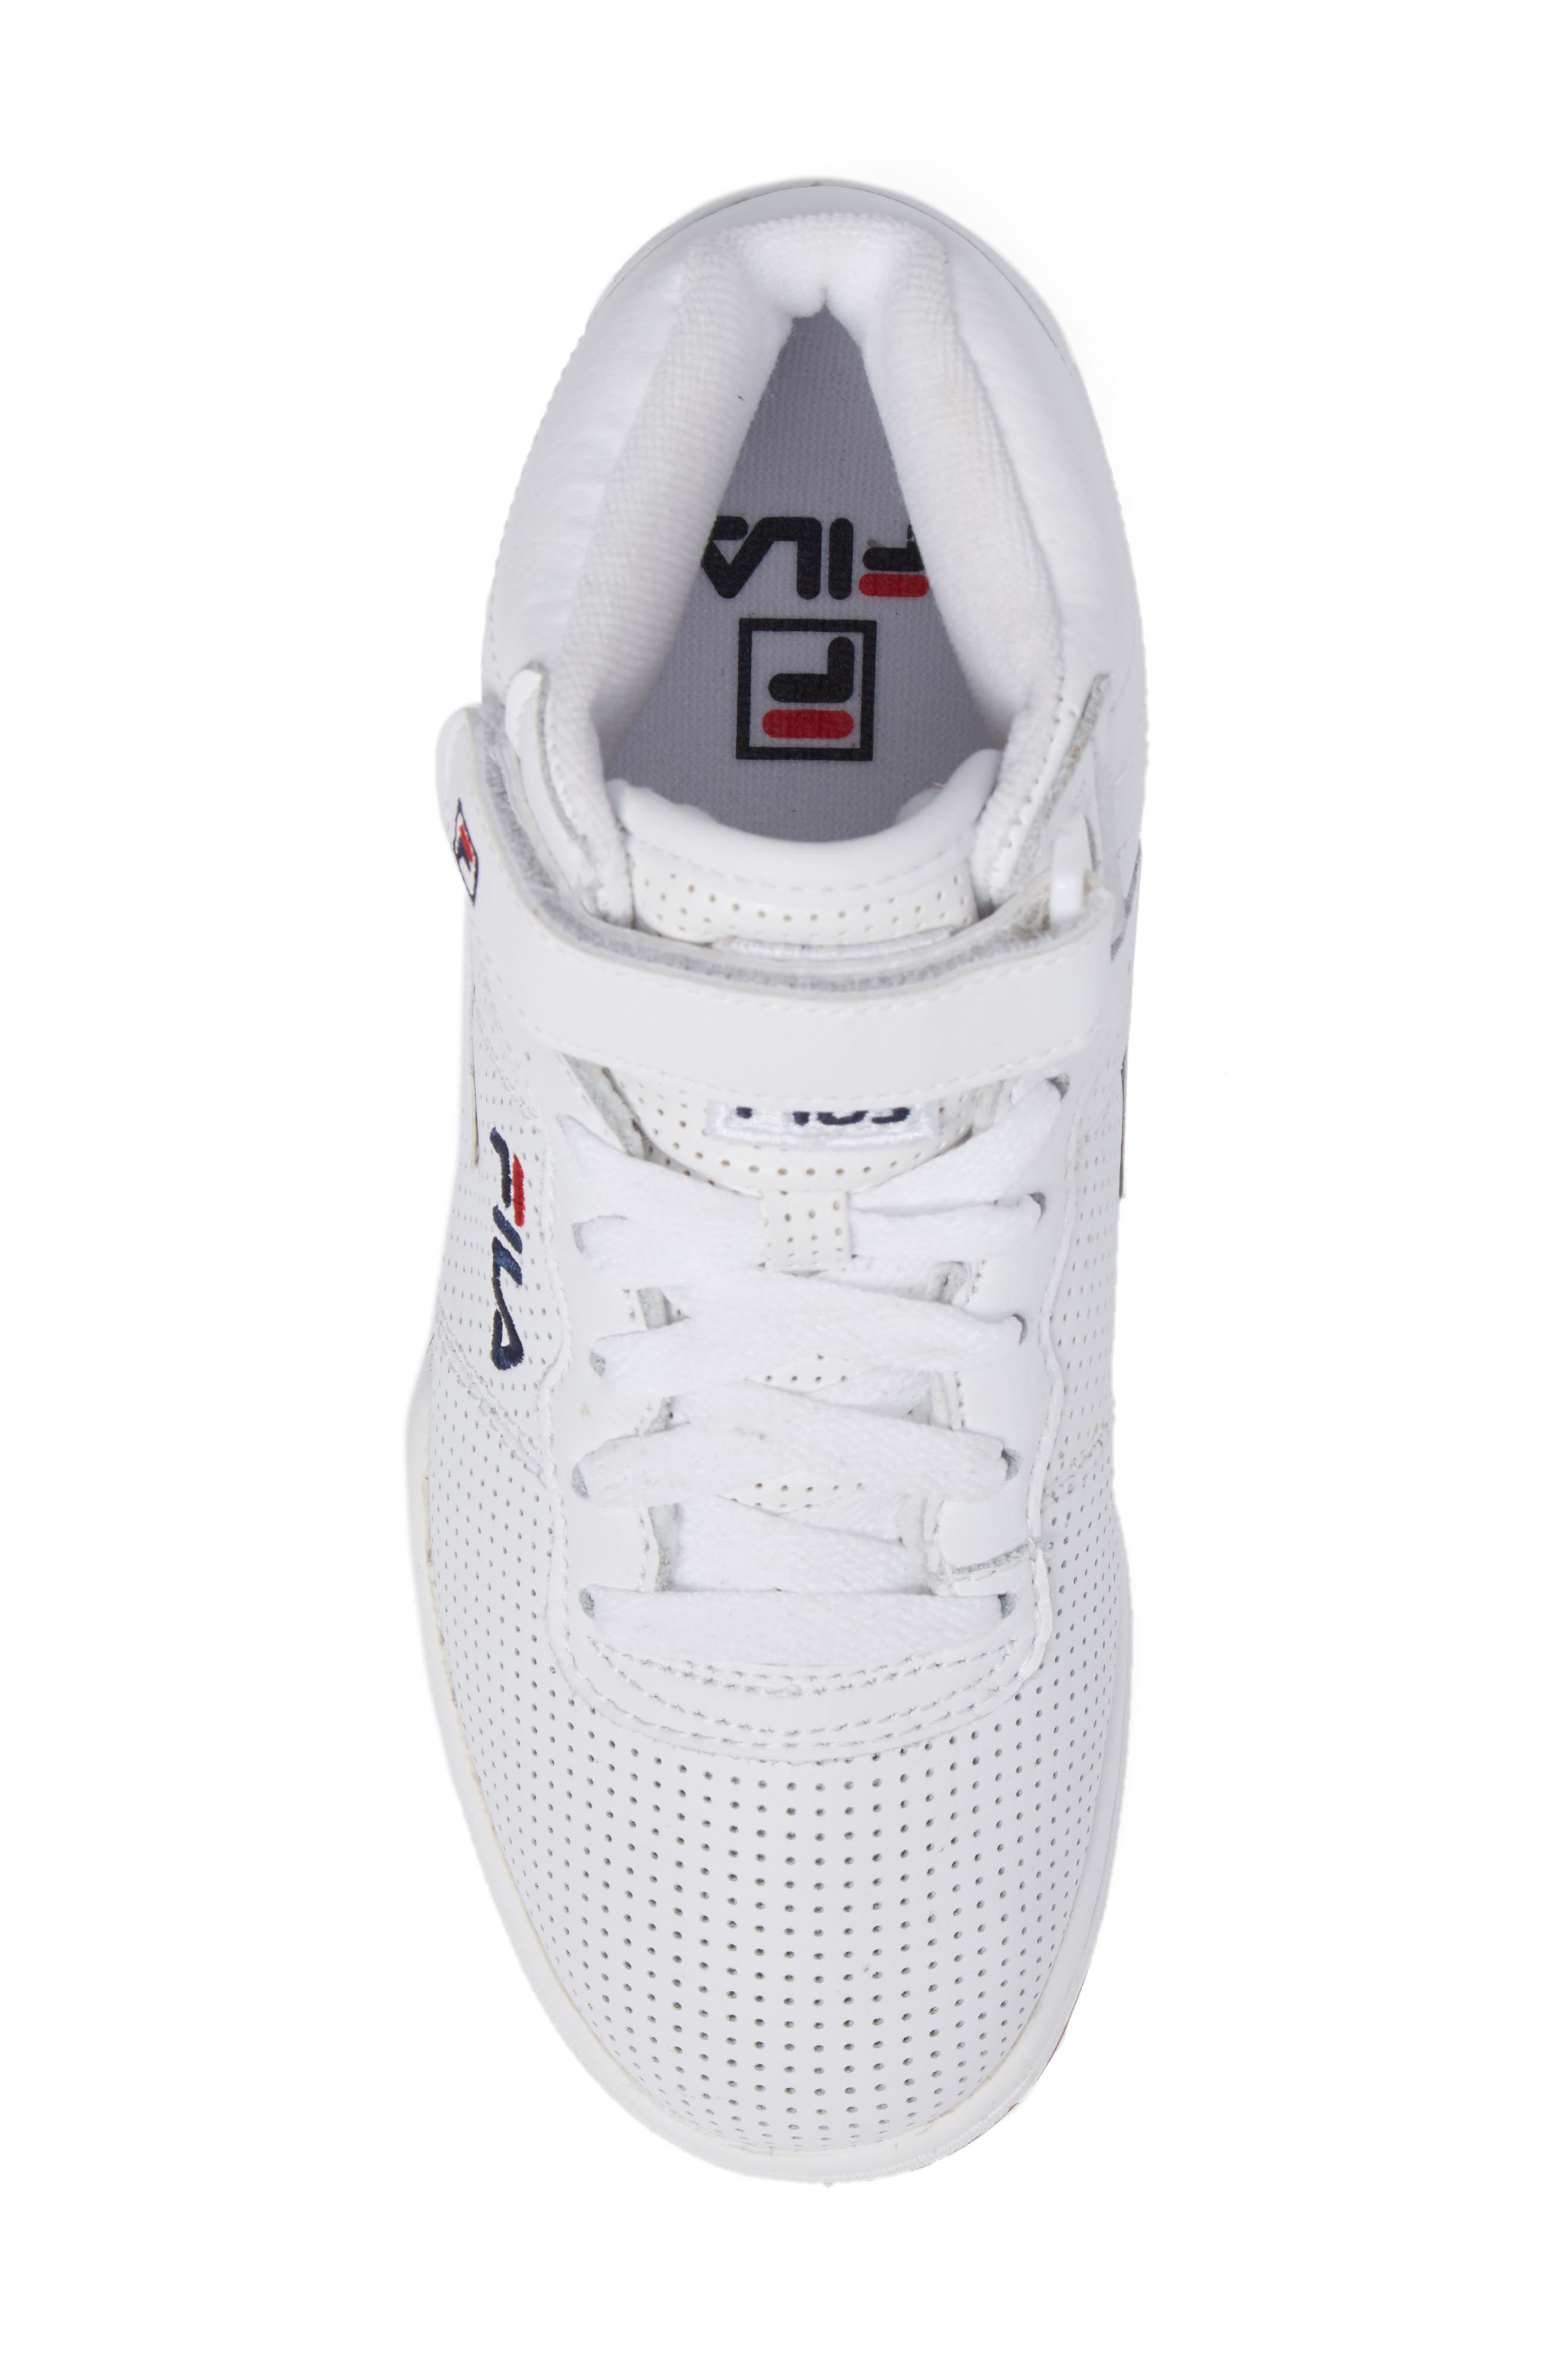 F-13 Perforated High Top Sneaker,                             Alternate thumbnail 5, color,                             White/Navy/Red